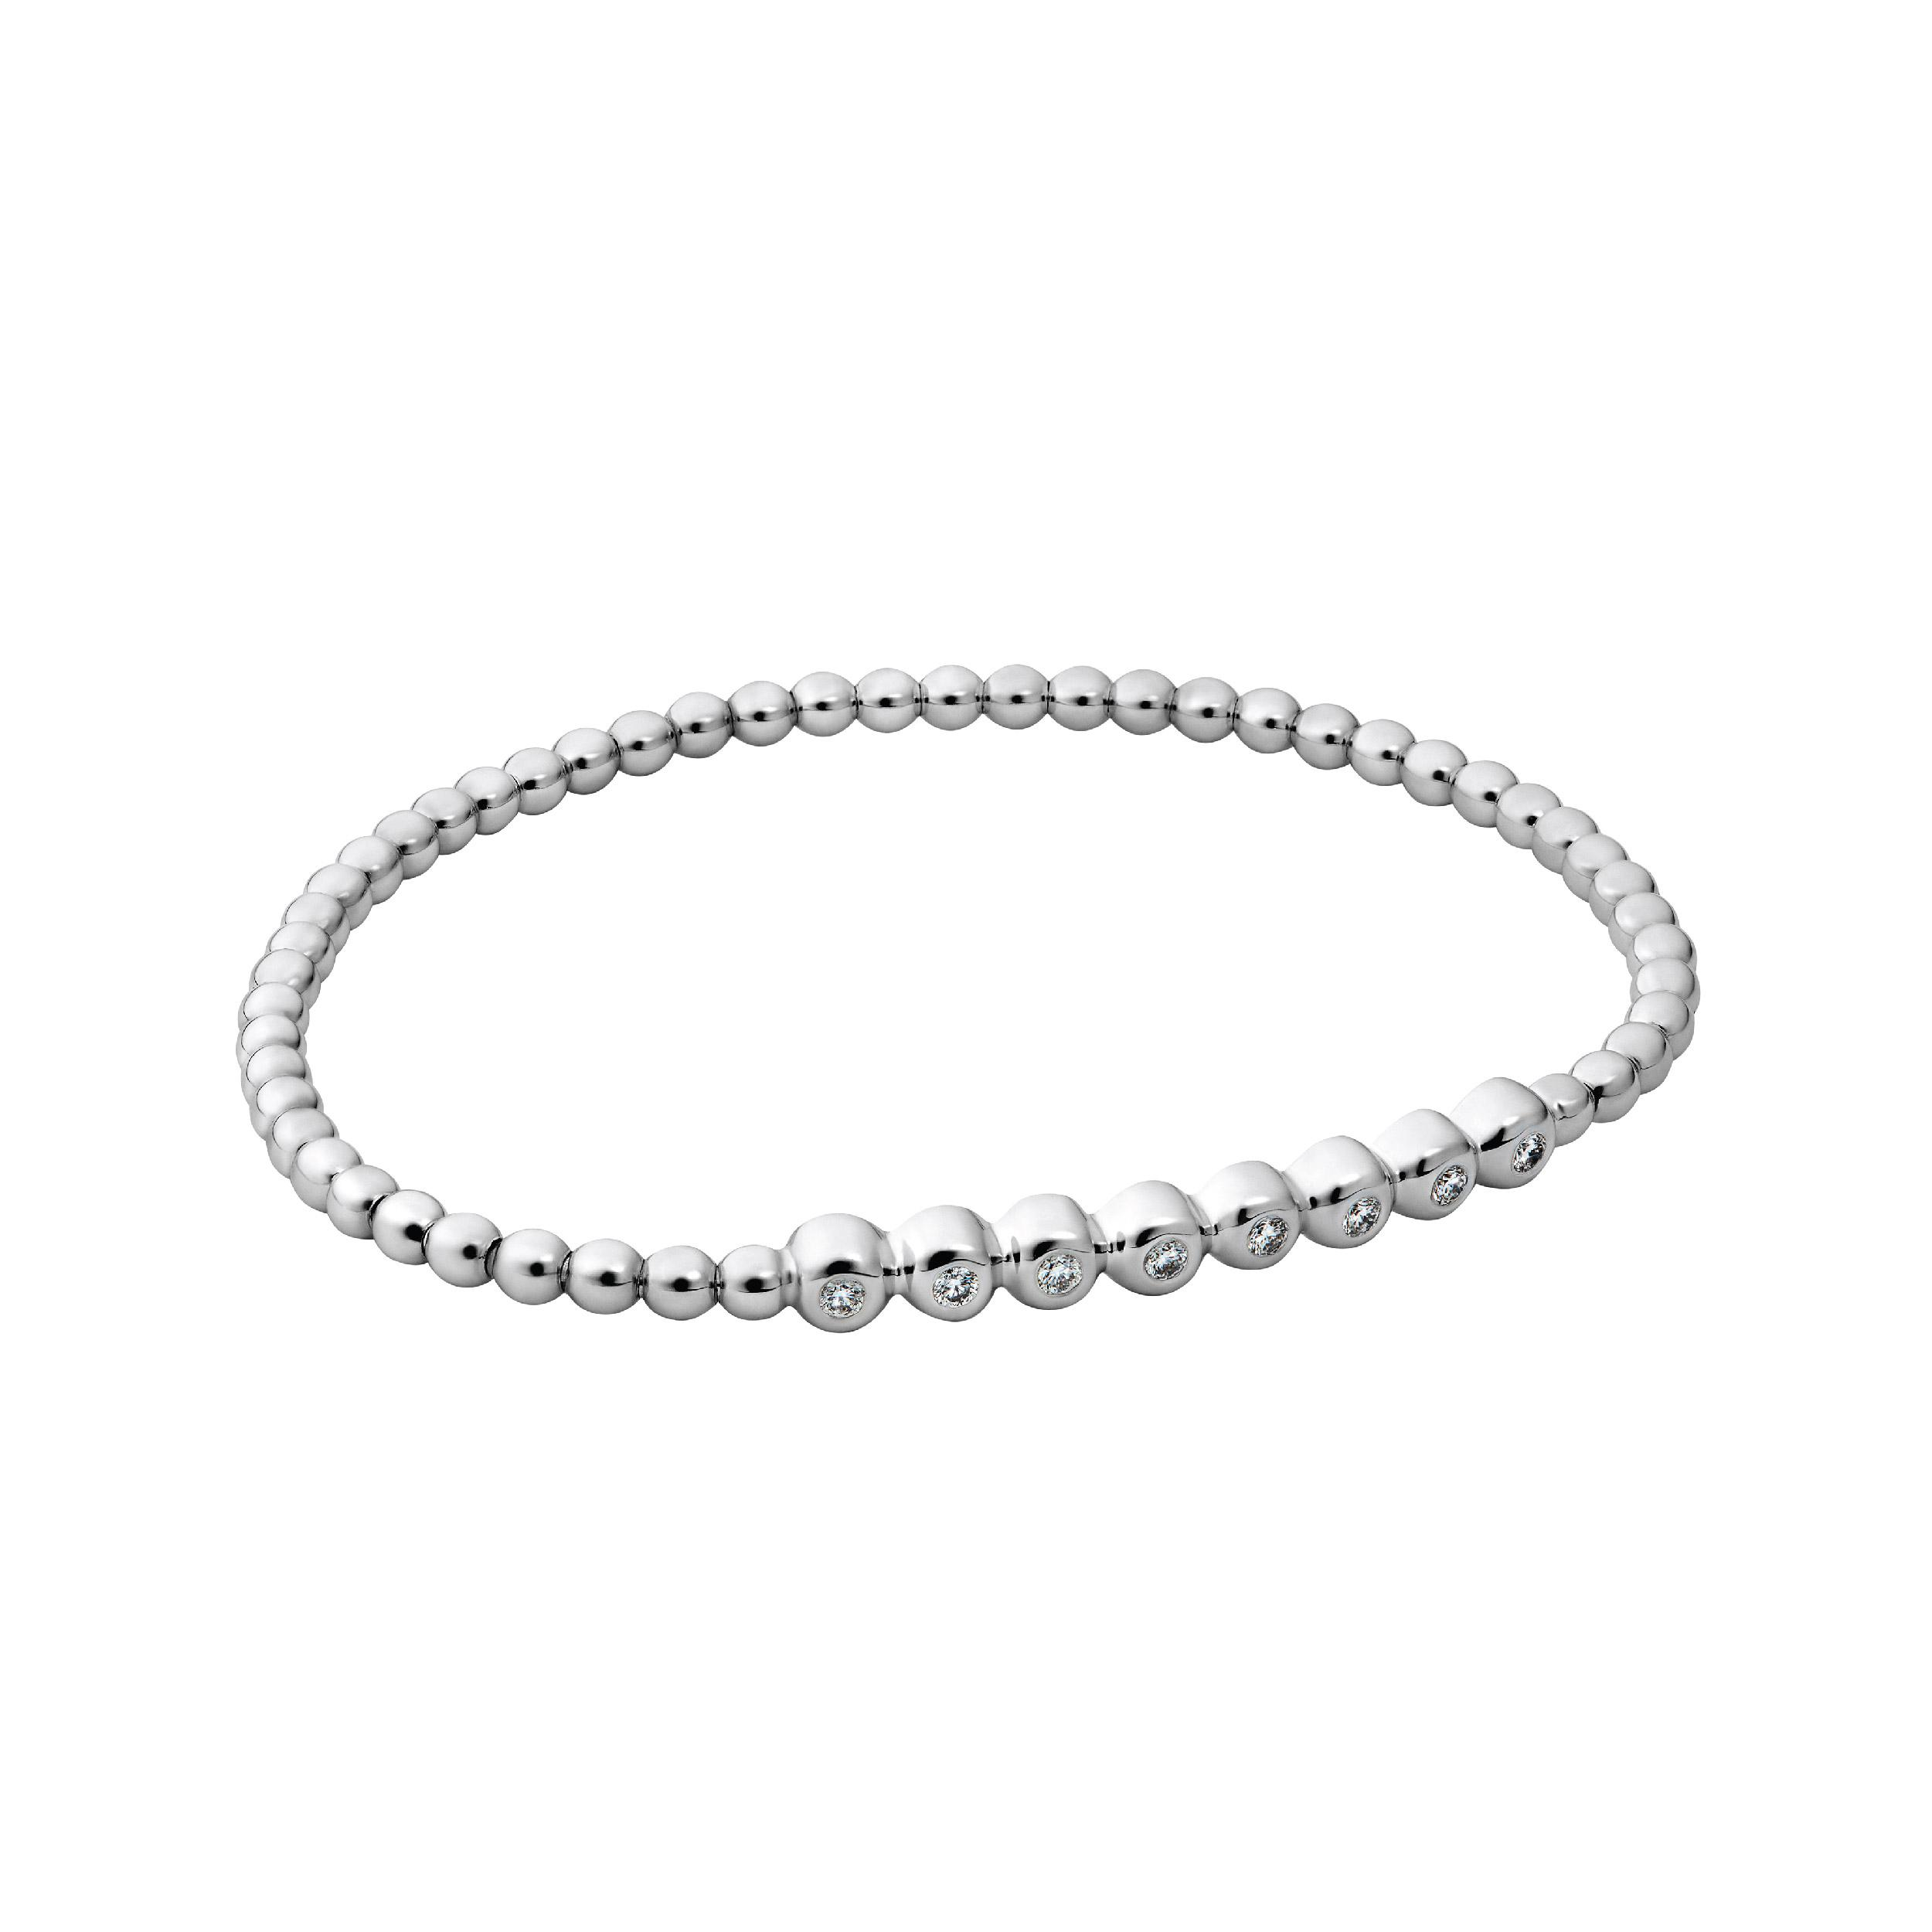 CHATE БРАСЛЕТ-РЕЗИНКА WHITE GOLD 0,26 ct